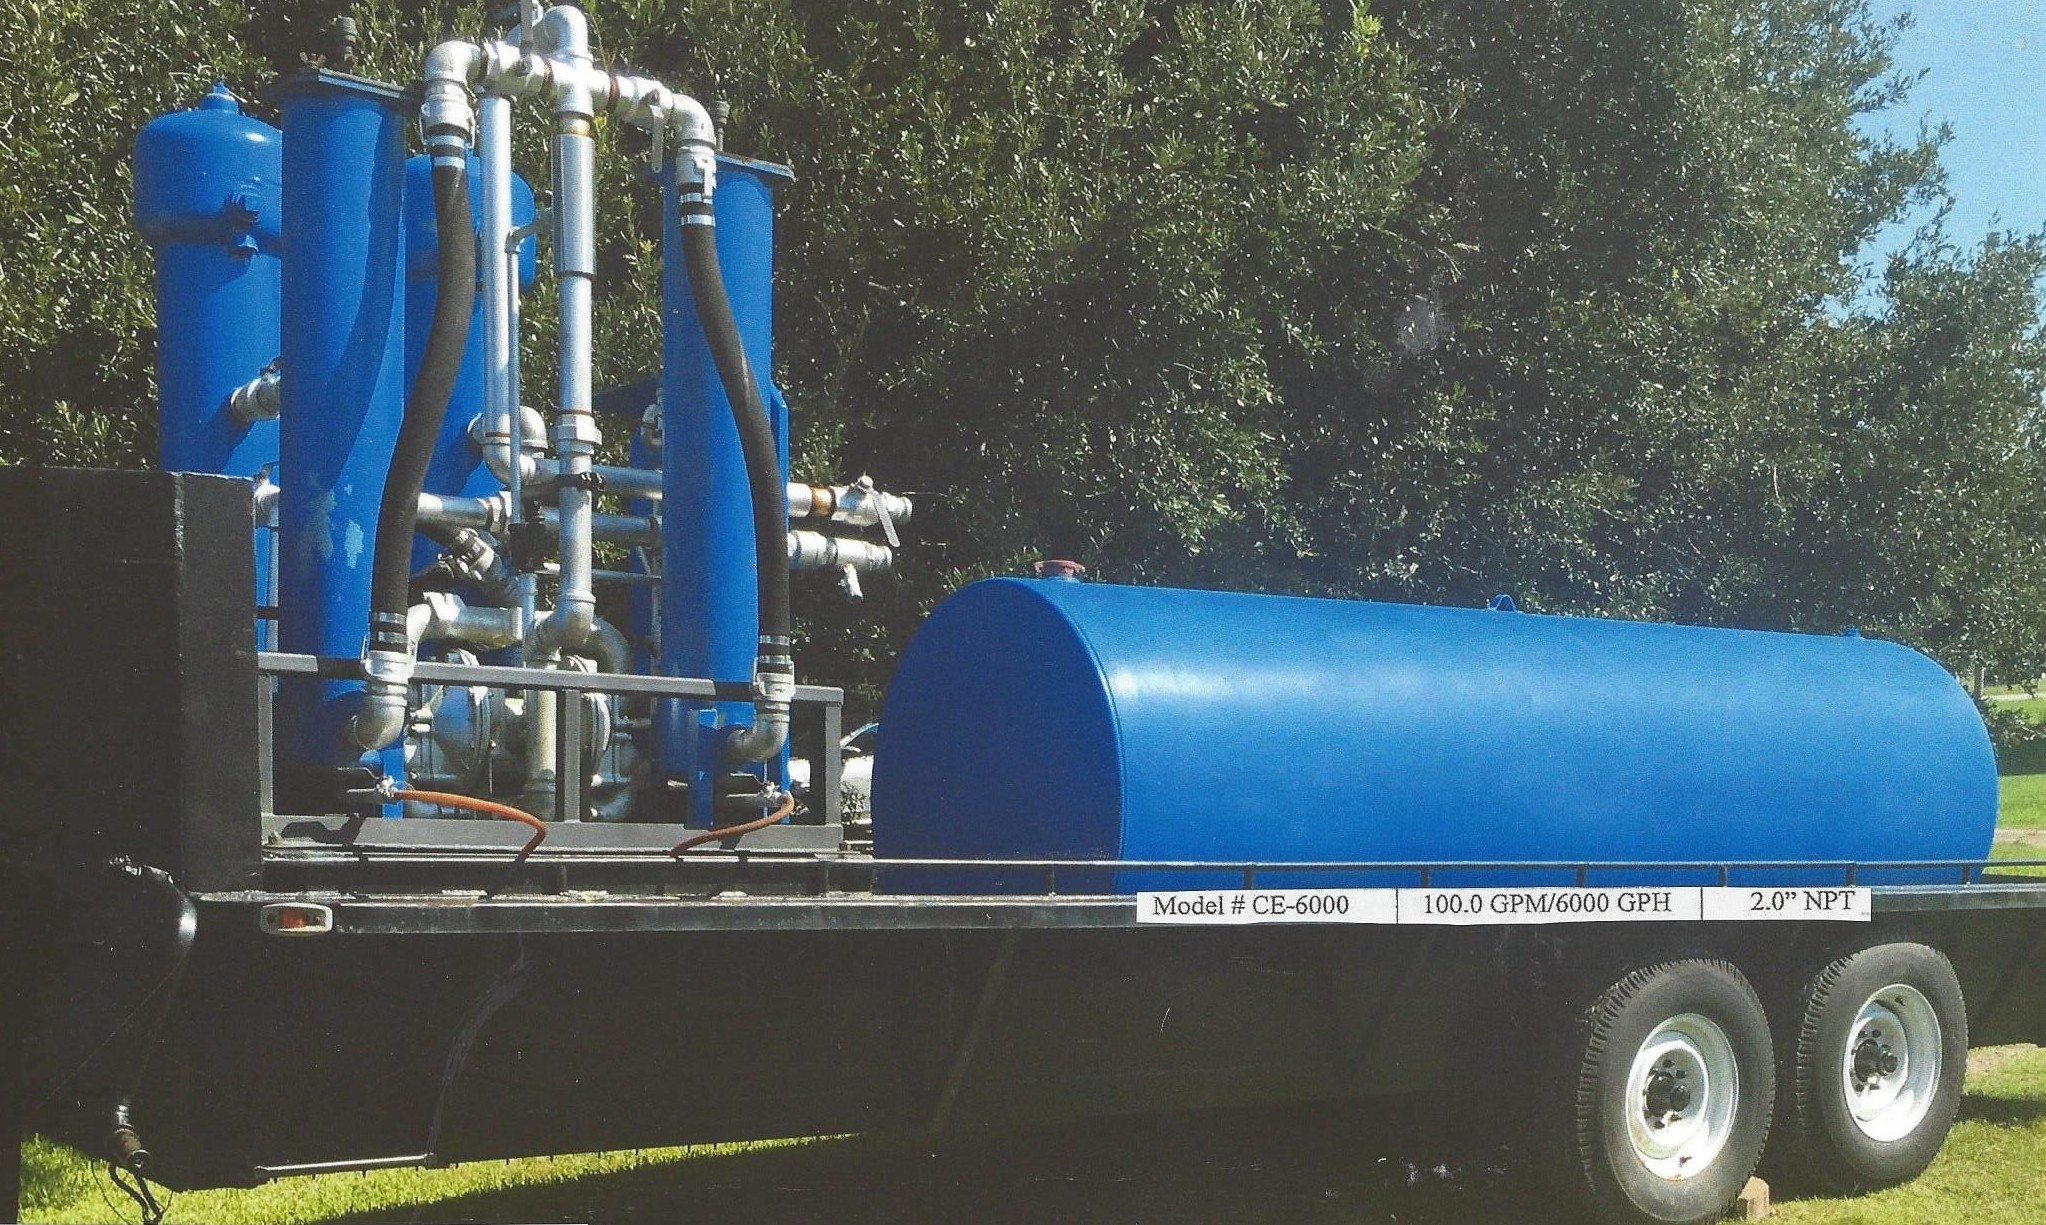 Picture of blue filtration  unit (1).jpg